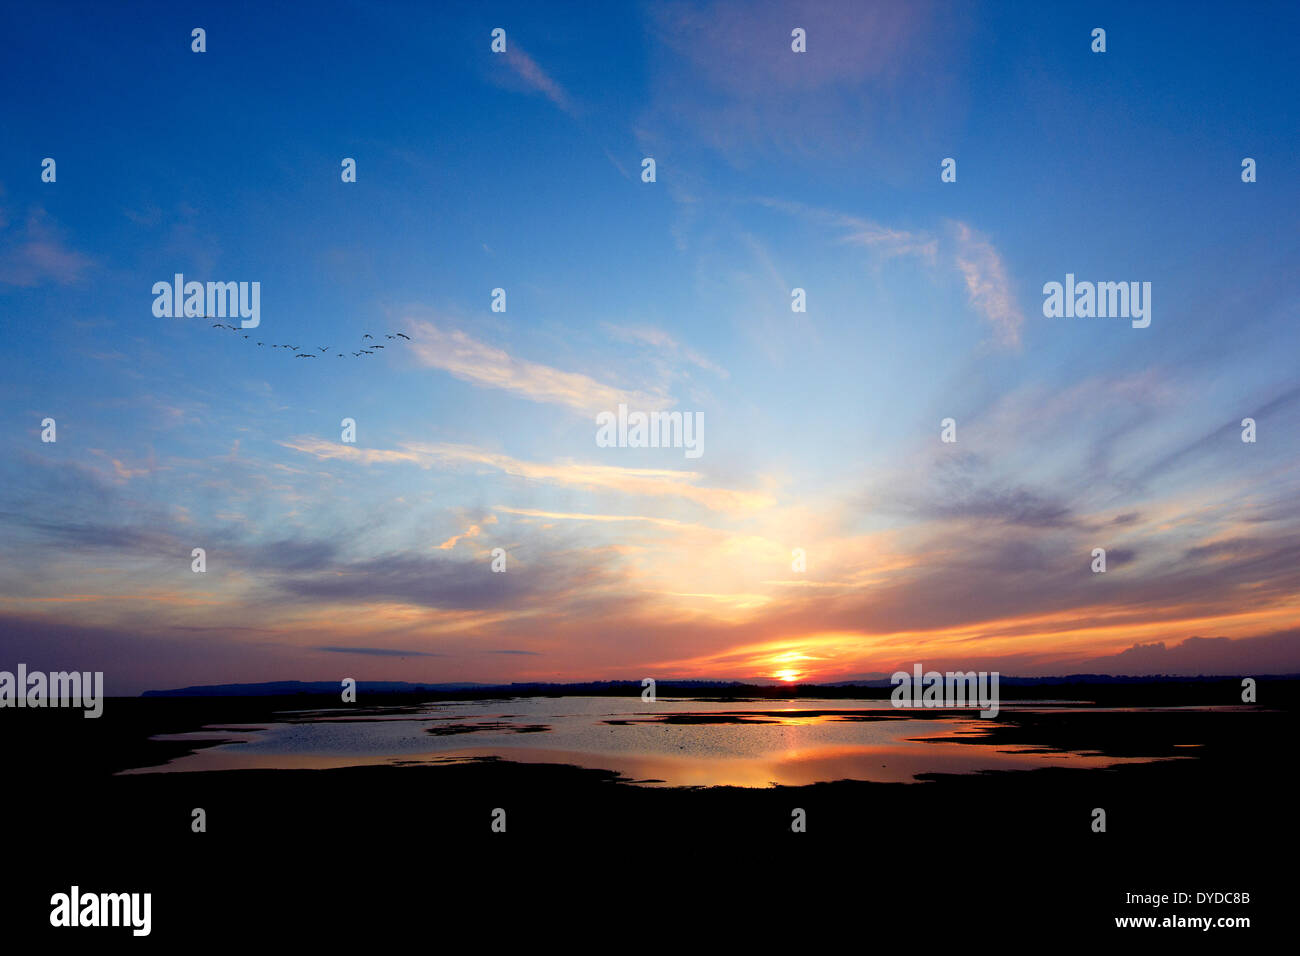 A view of Rye Harbour Nature Reserve at sunset. - Stock Image